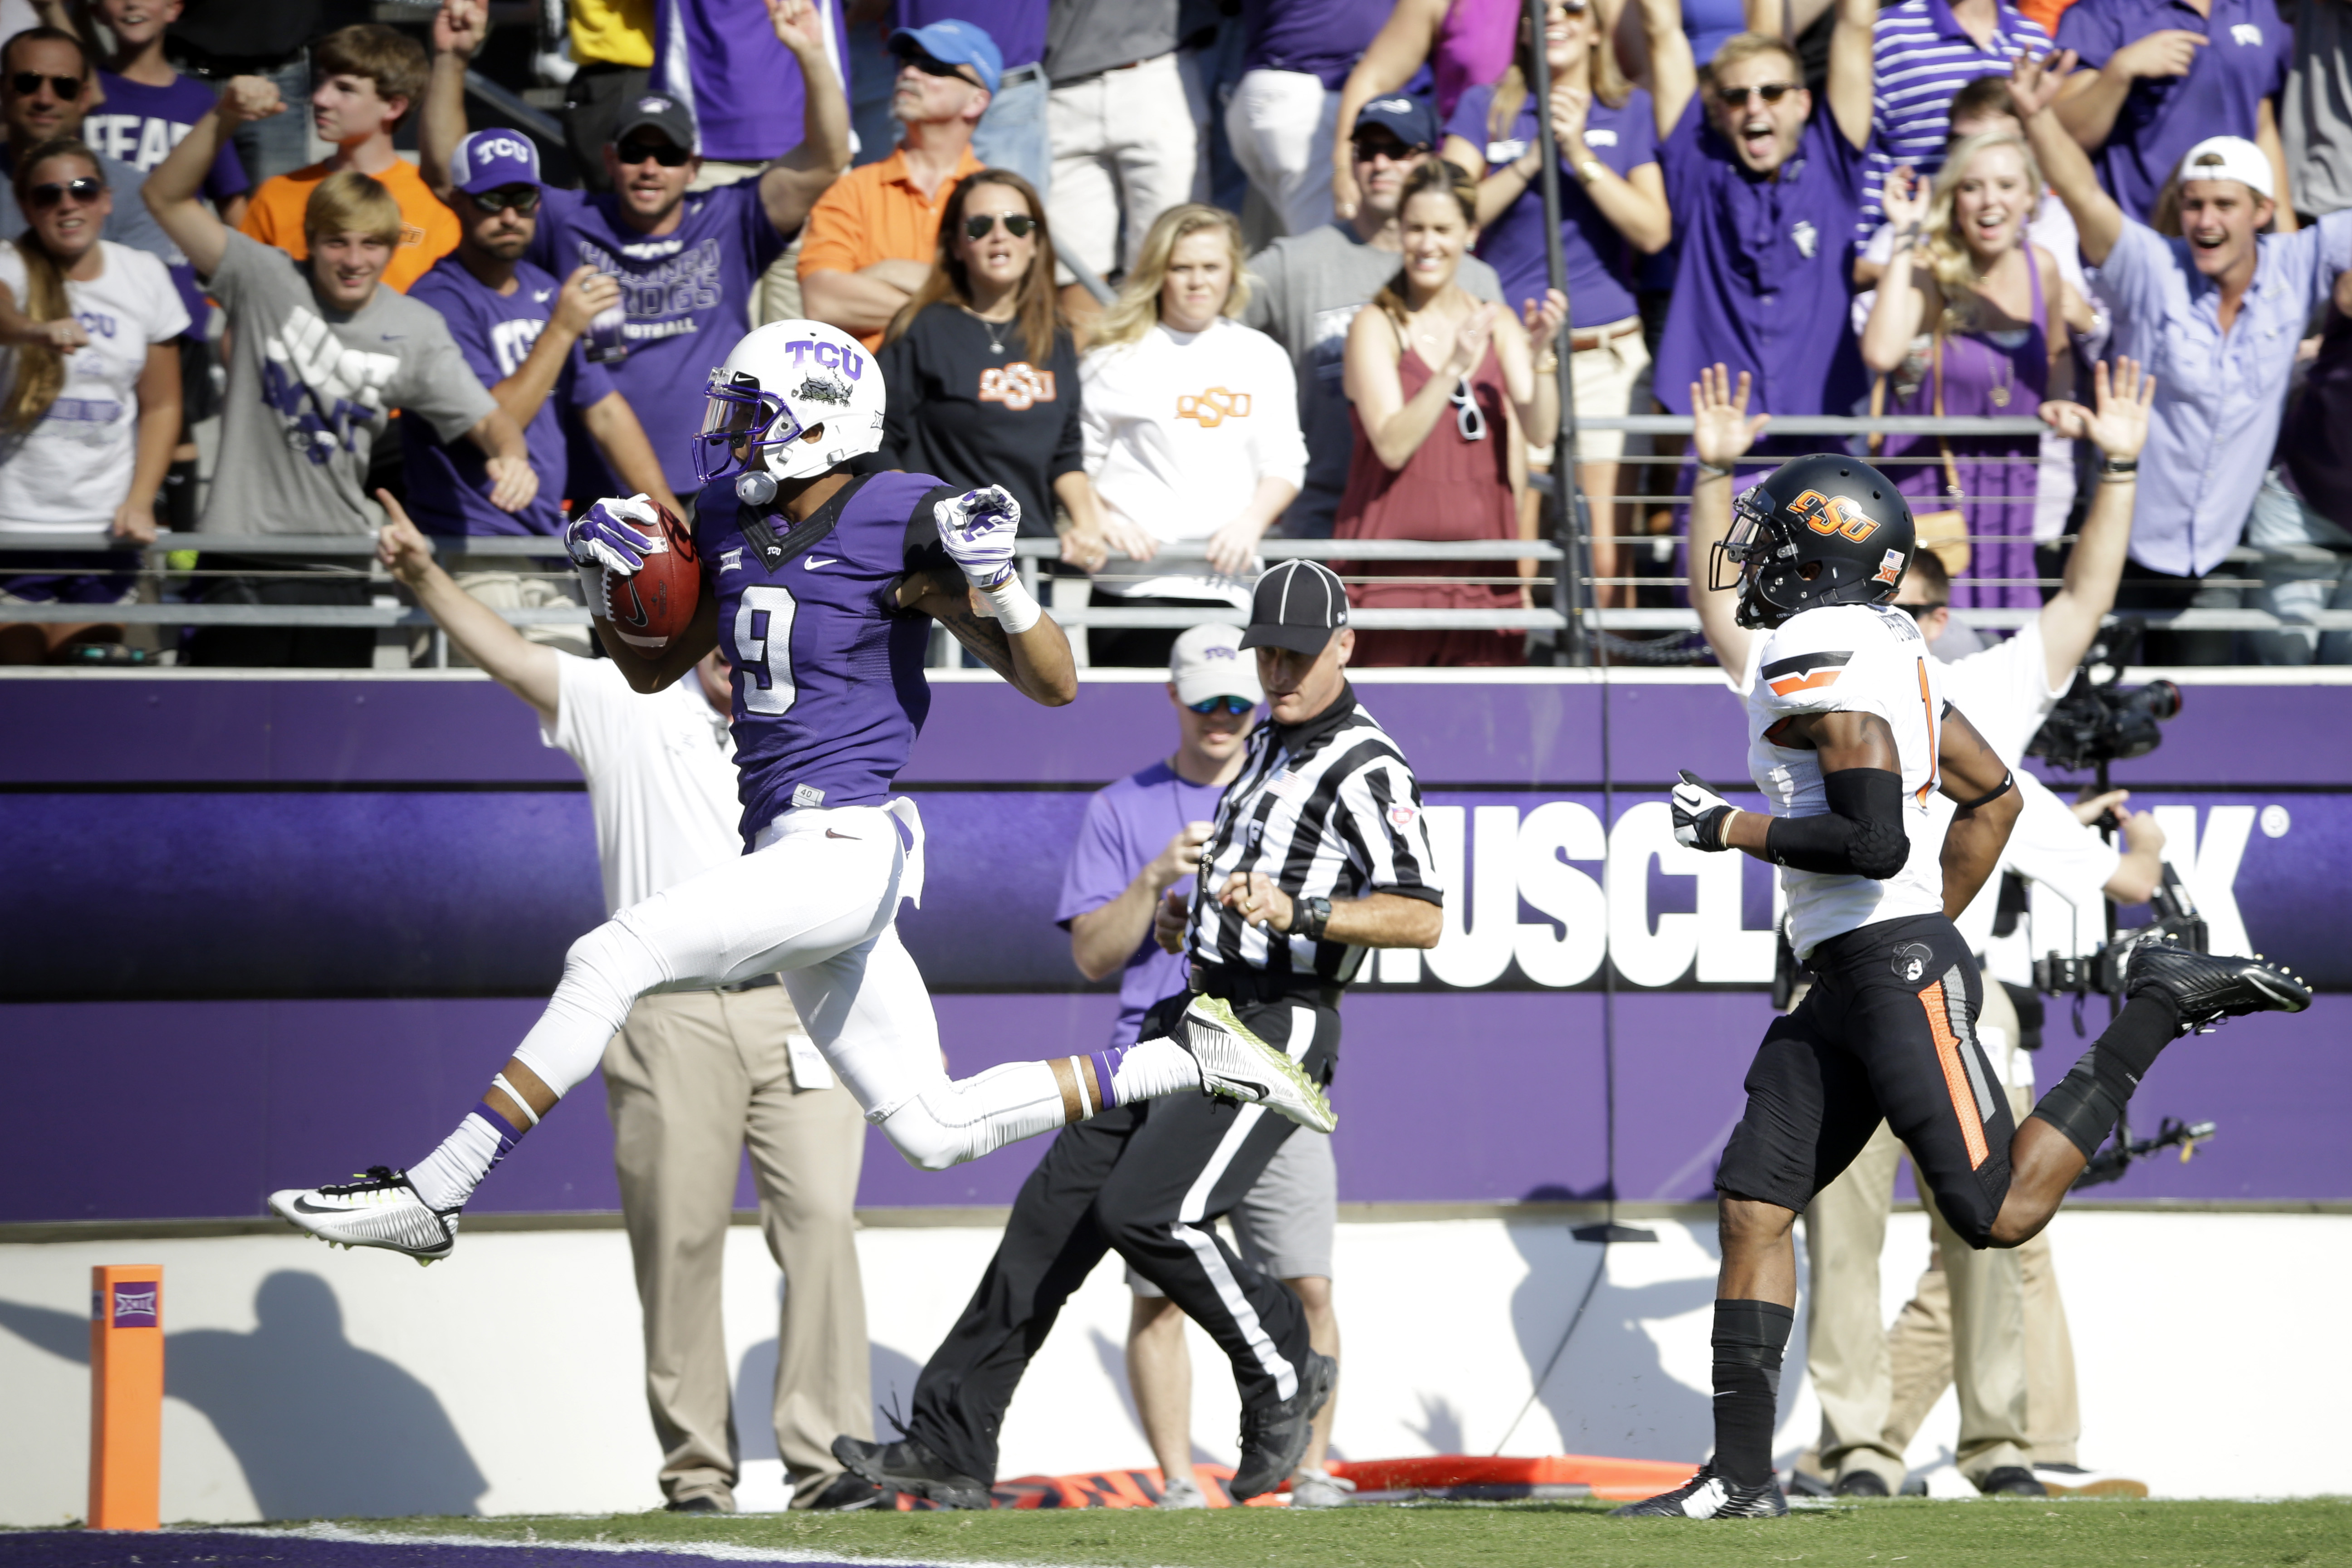 TCU's Josh Doctson (9) sprints into the end zone for a score ahead of Oklahoma State cornerback Kevin Peterson (1) during an NCAA college football game, Saturday, Oct. 18, 2014, in Fort Worth, Texas. (AP Photo/Tony Gutierrez)